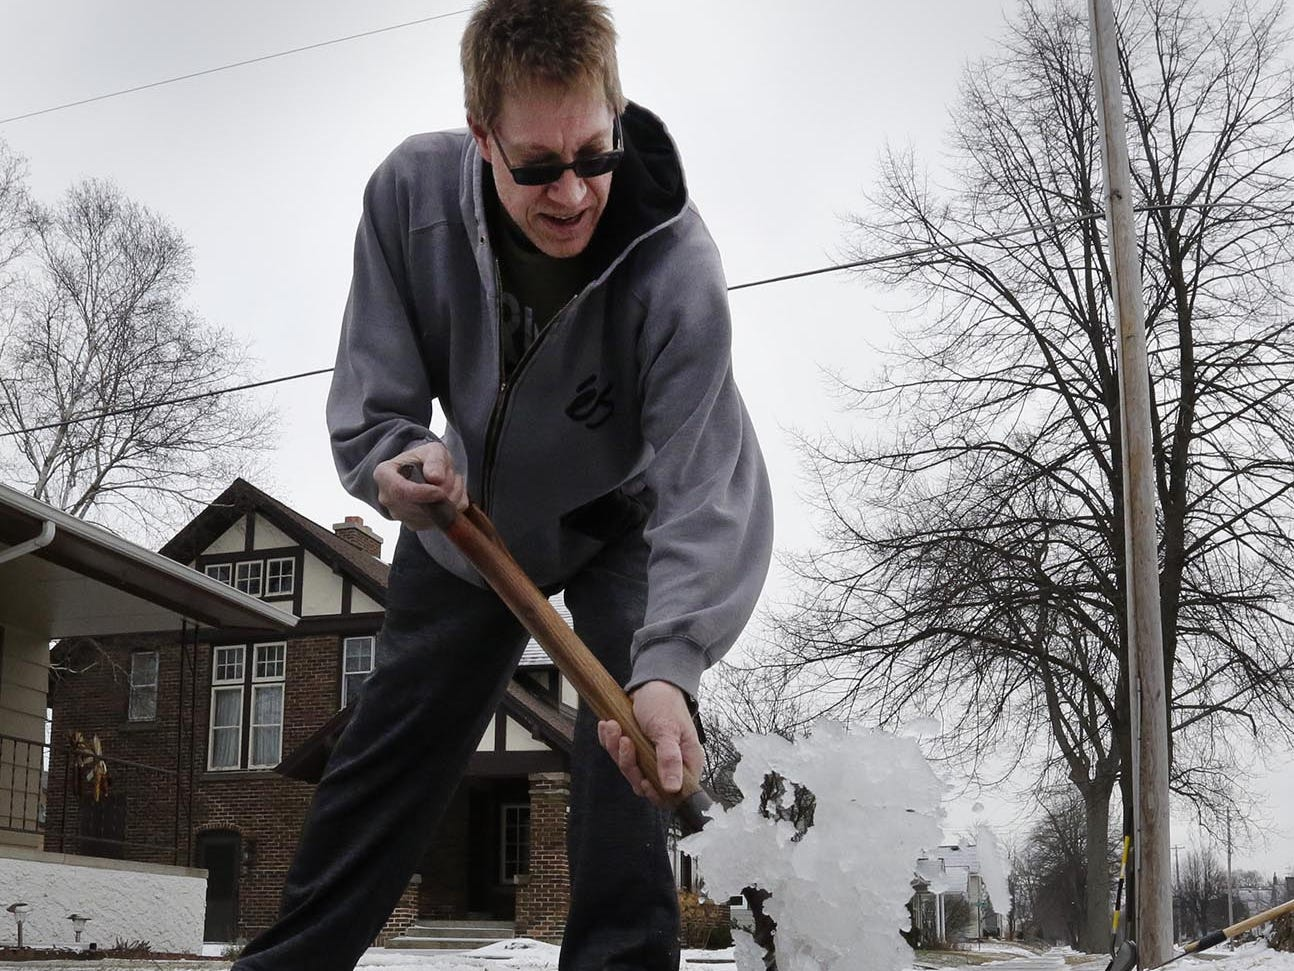 Mark Rieger of Sheboygan shovels ice off his sidewalks near his North 3rd Street home, Thursday, January 25, 2018, in Sheboygan, Wis.